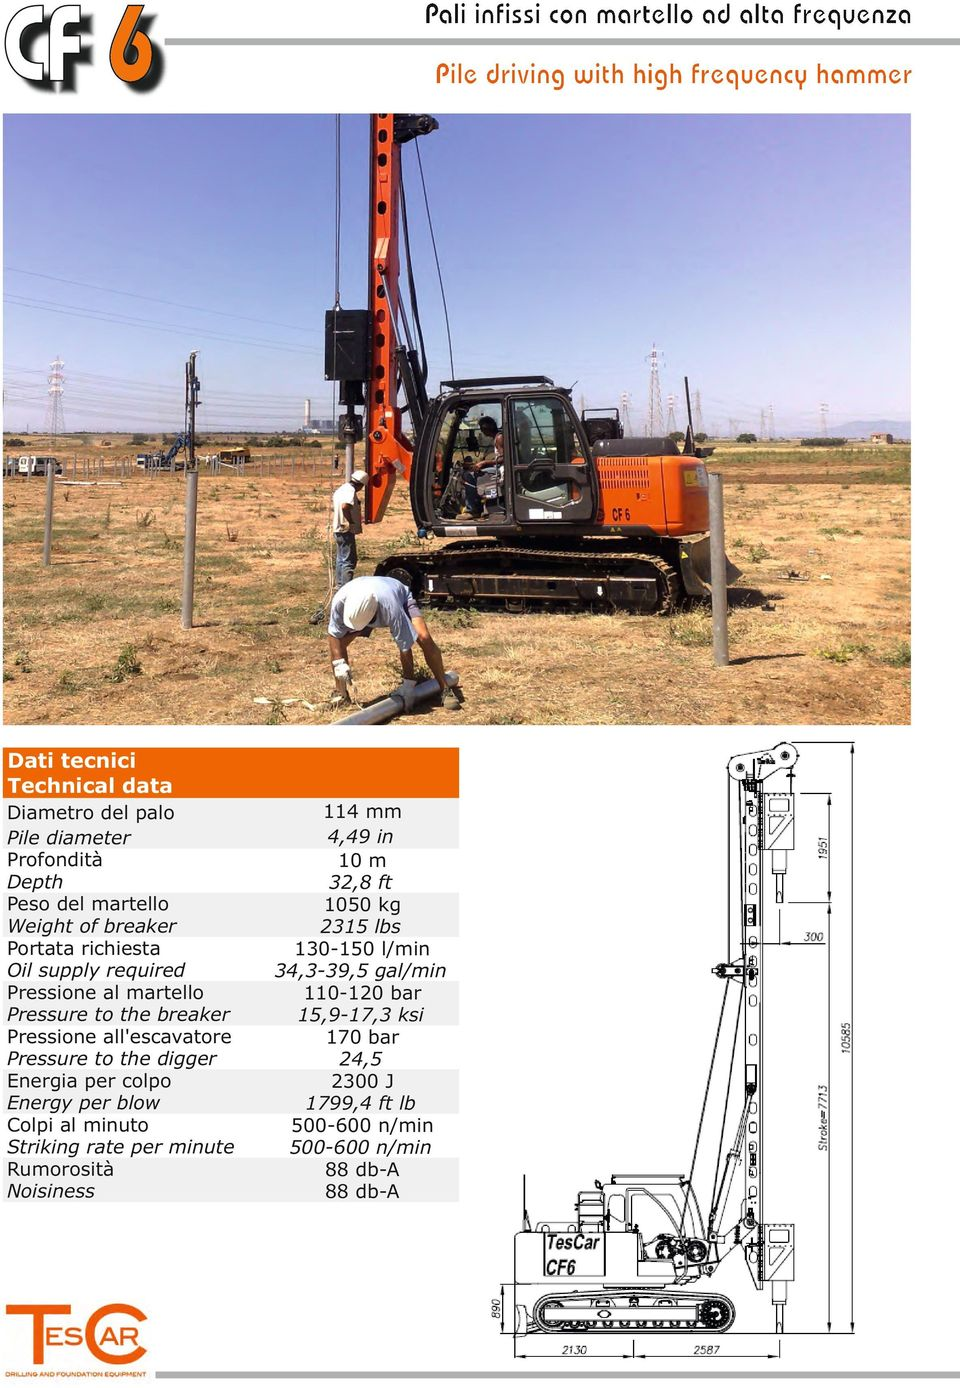 Pressione all'escavatore Pressure to the digger Energia per colpo Energy per blow Colpi al muto Strikg rate per mute Rumorosità Noisess 114